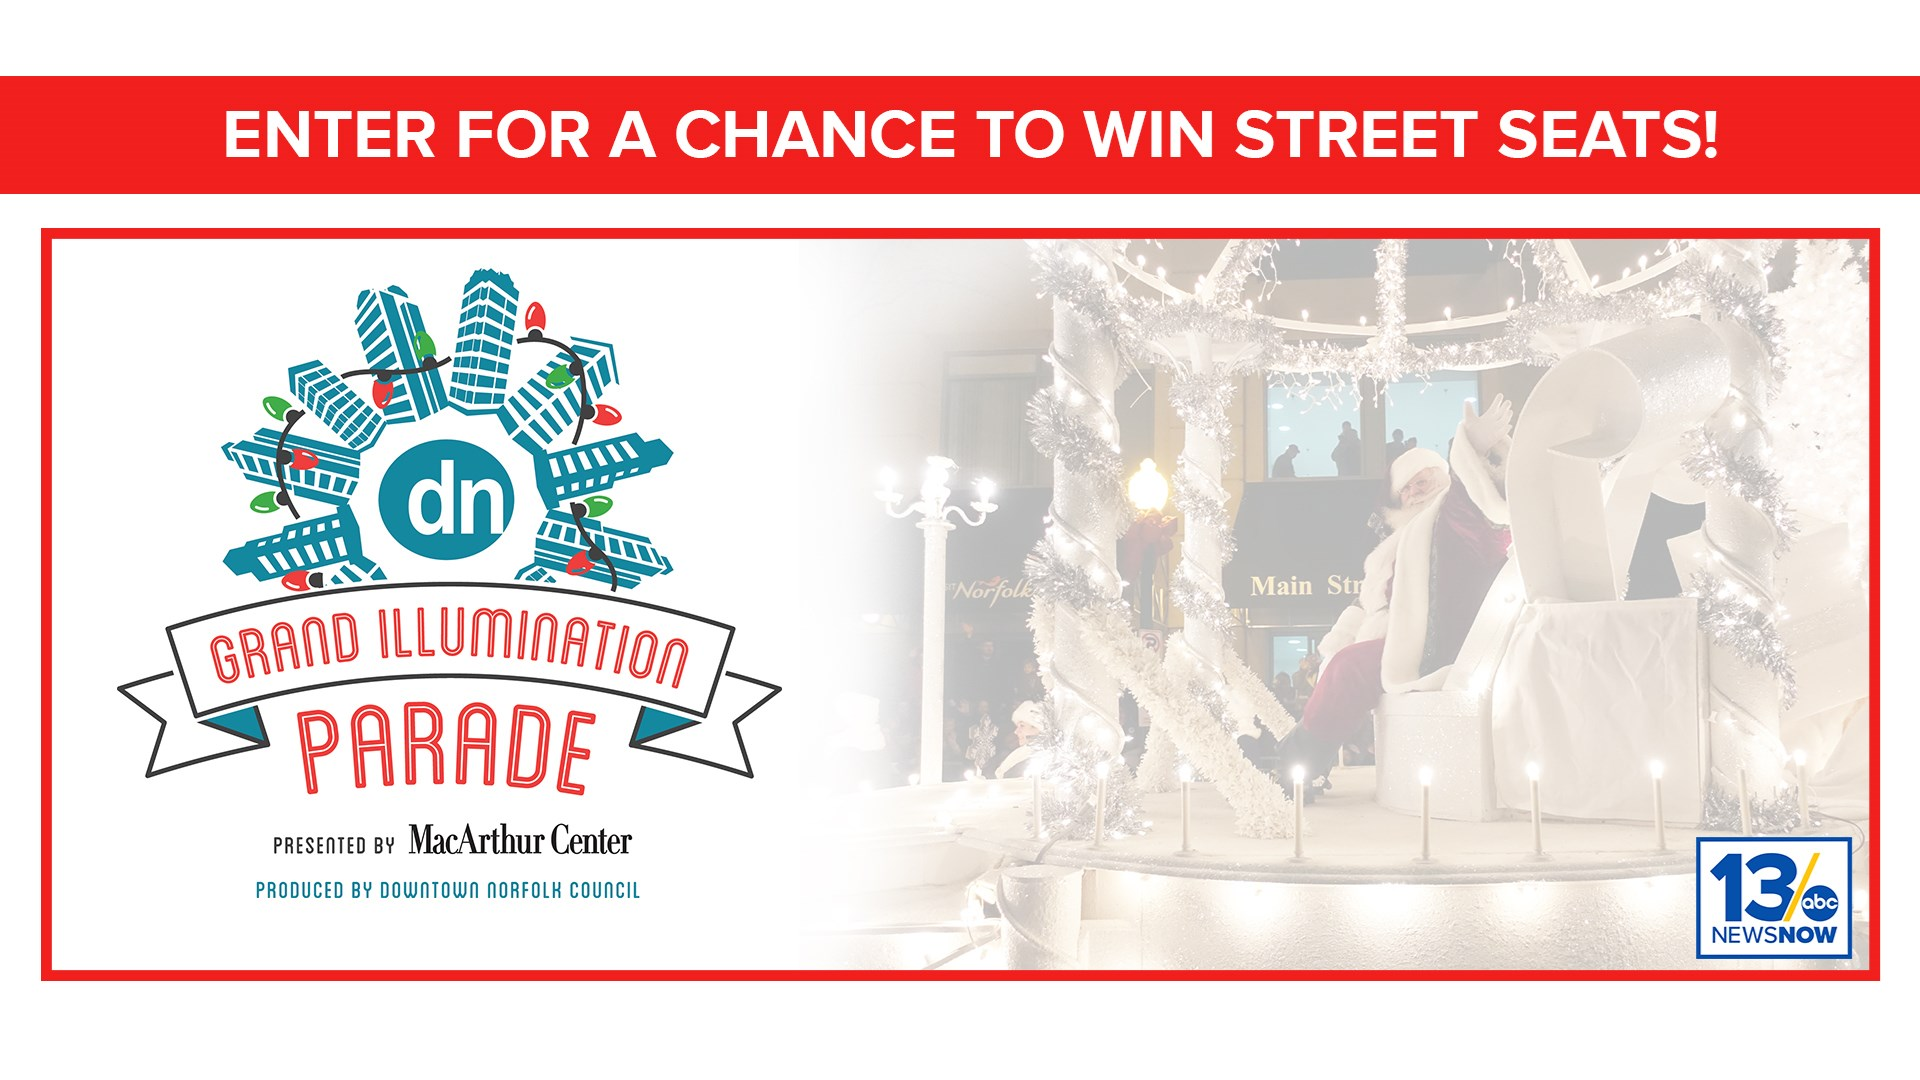 Holiday Parade sweepstakes | 13newsnow.com